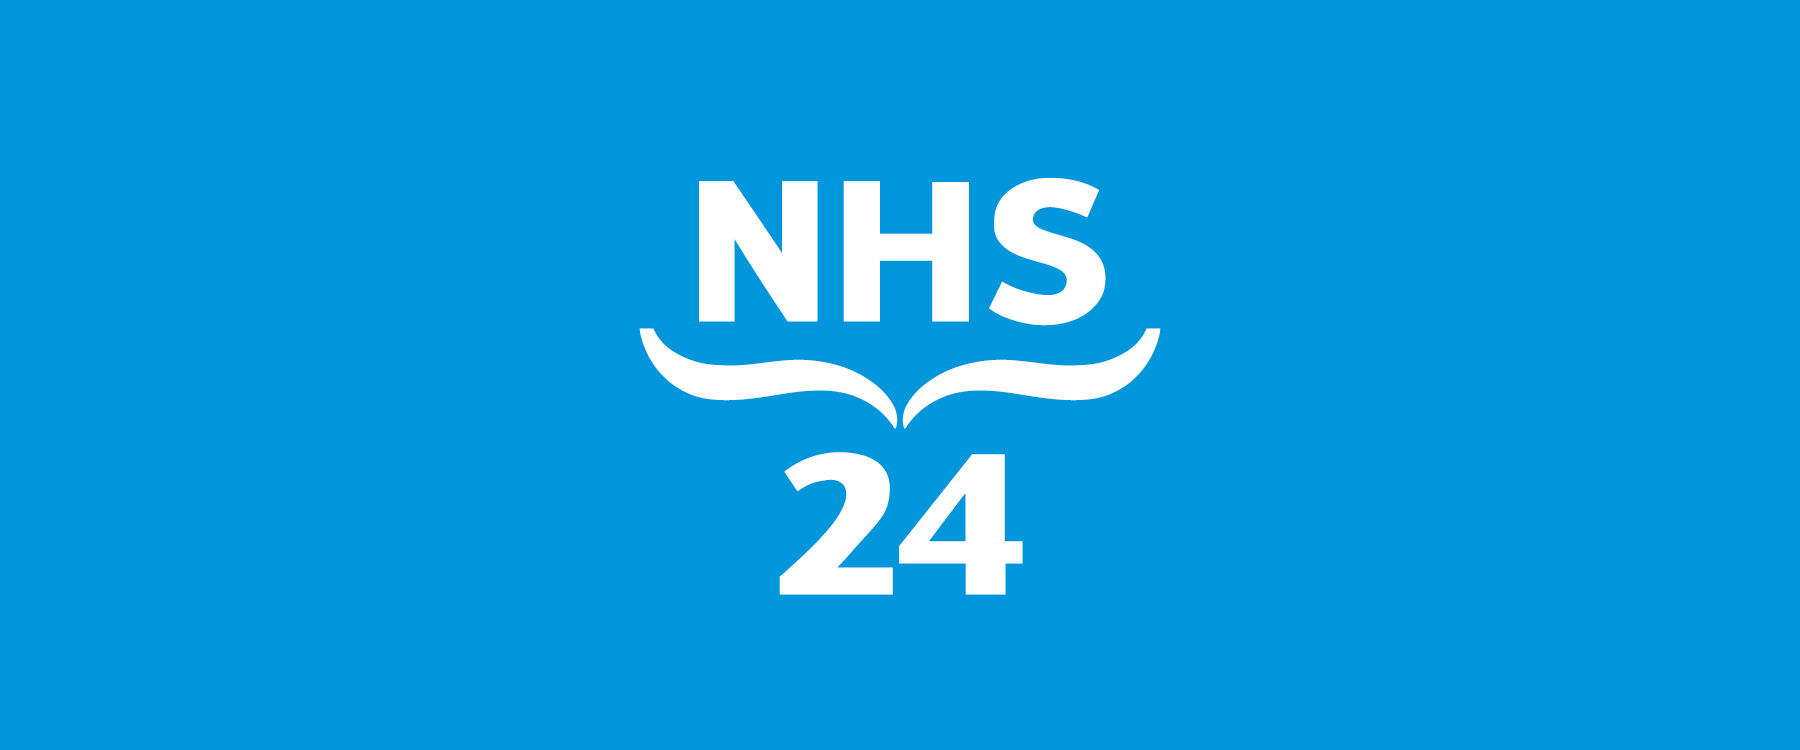 NHS 24 Lead Image 1800x750